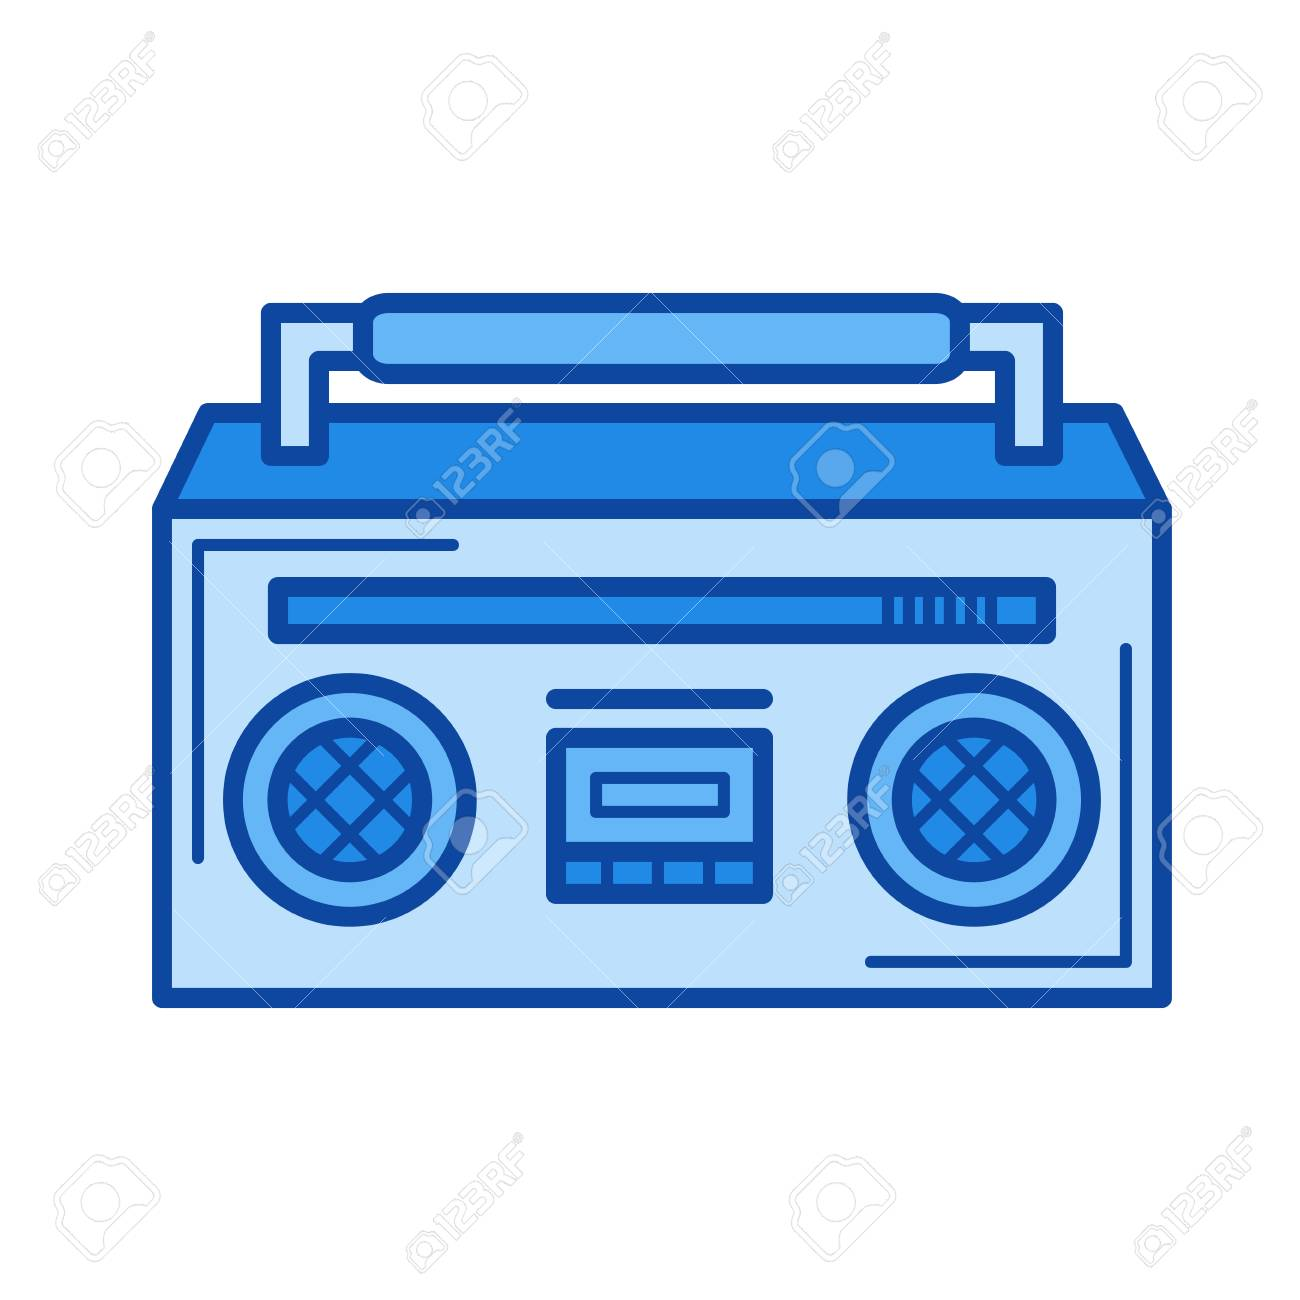 boombox vector line icon isolated on white background boombox rh 123rf com old boombox vector boombox vector free